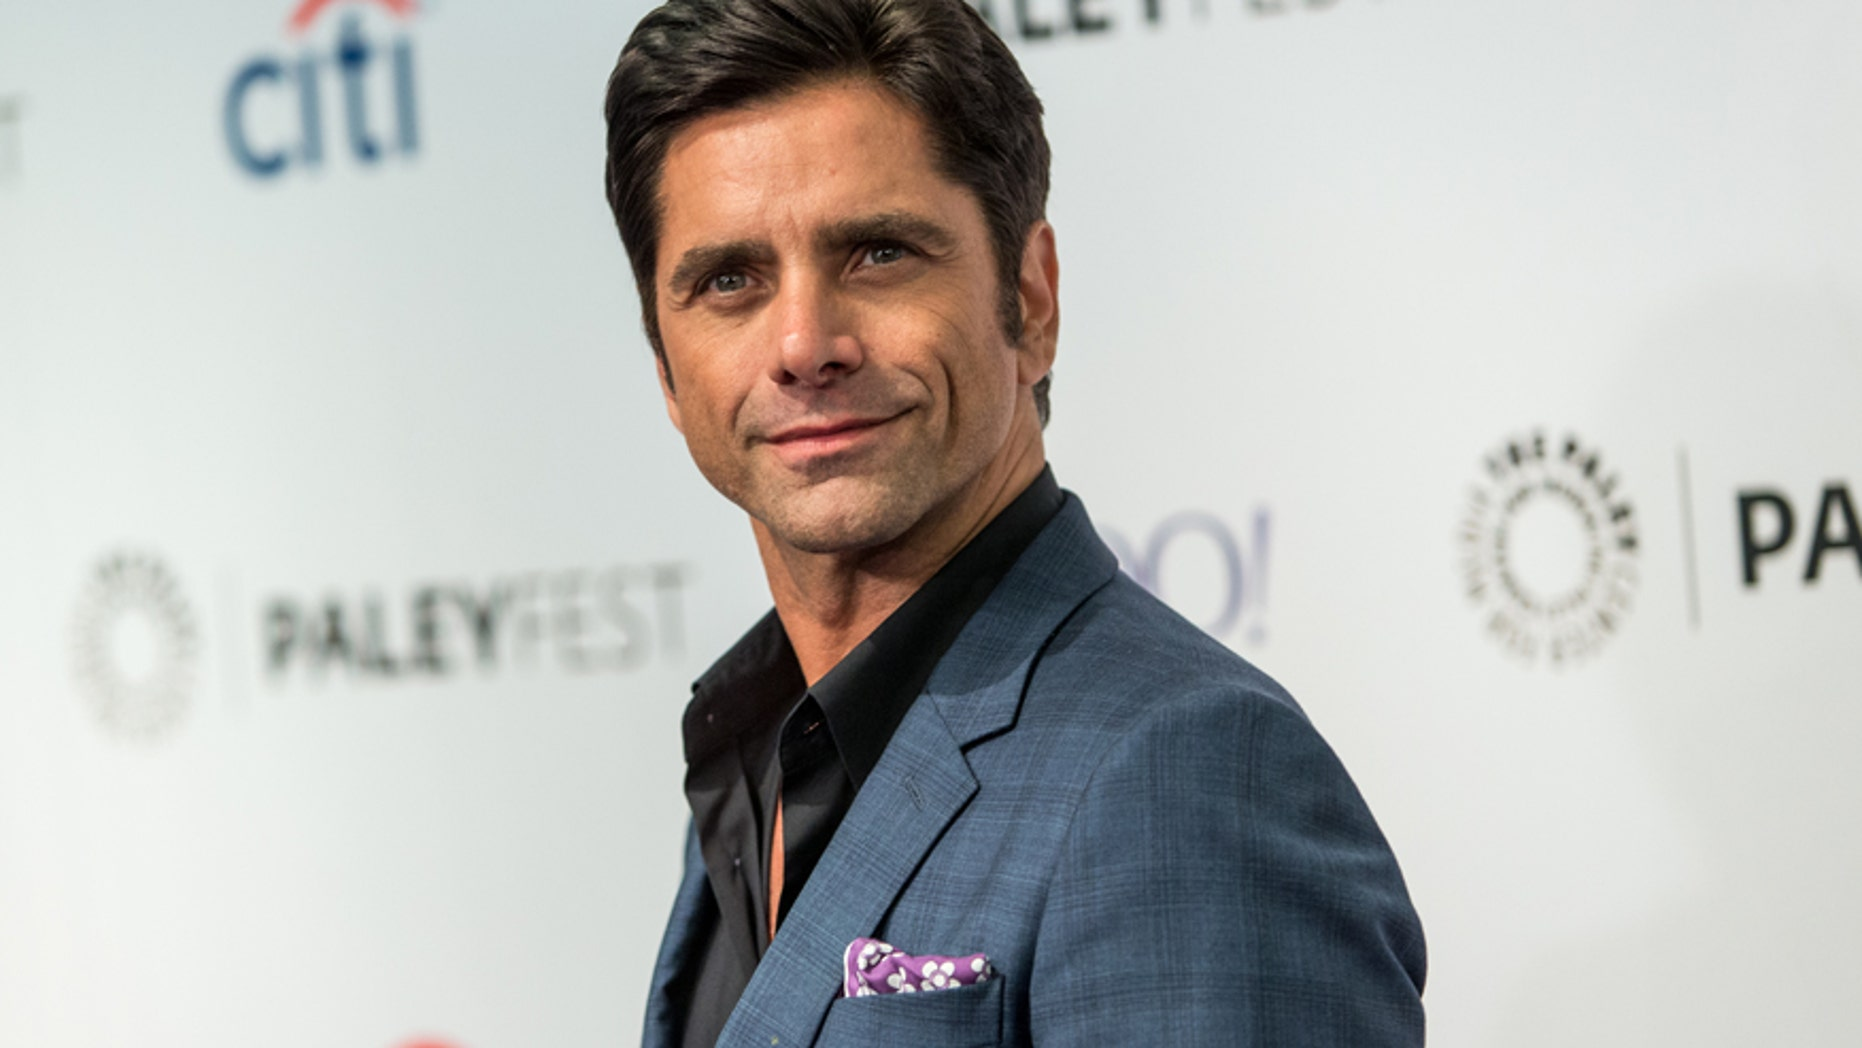 In this Sept. 15, 2015 file photo, John Stamos attends the at 2015 PaleyFest Fall TV Previews at The Paley Center for Media in Beverly Hills, Calif.